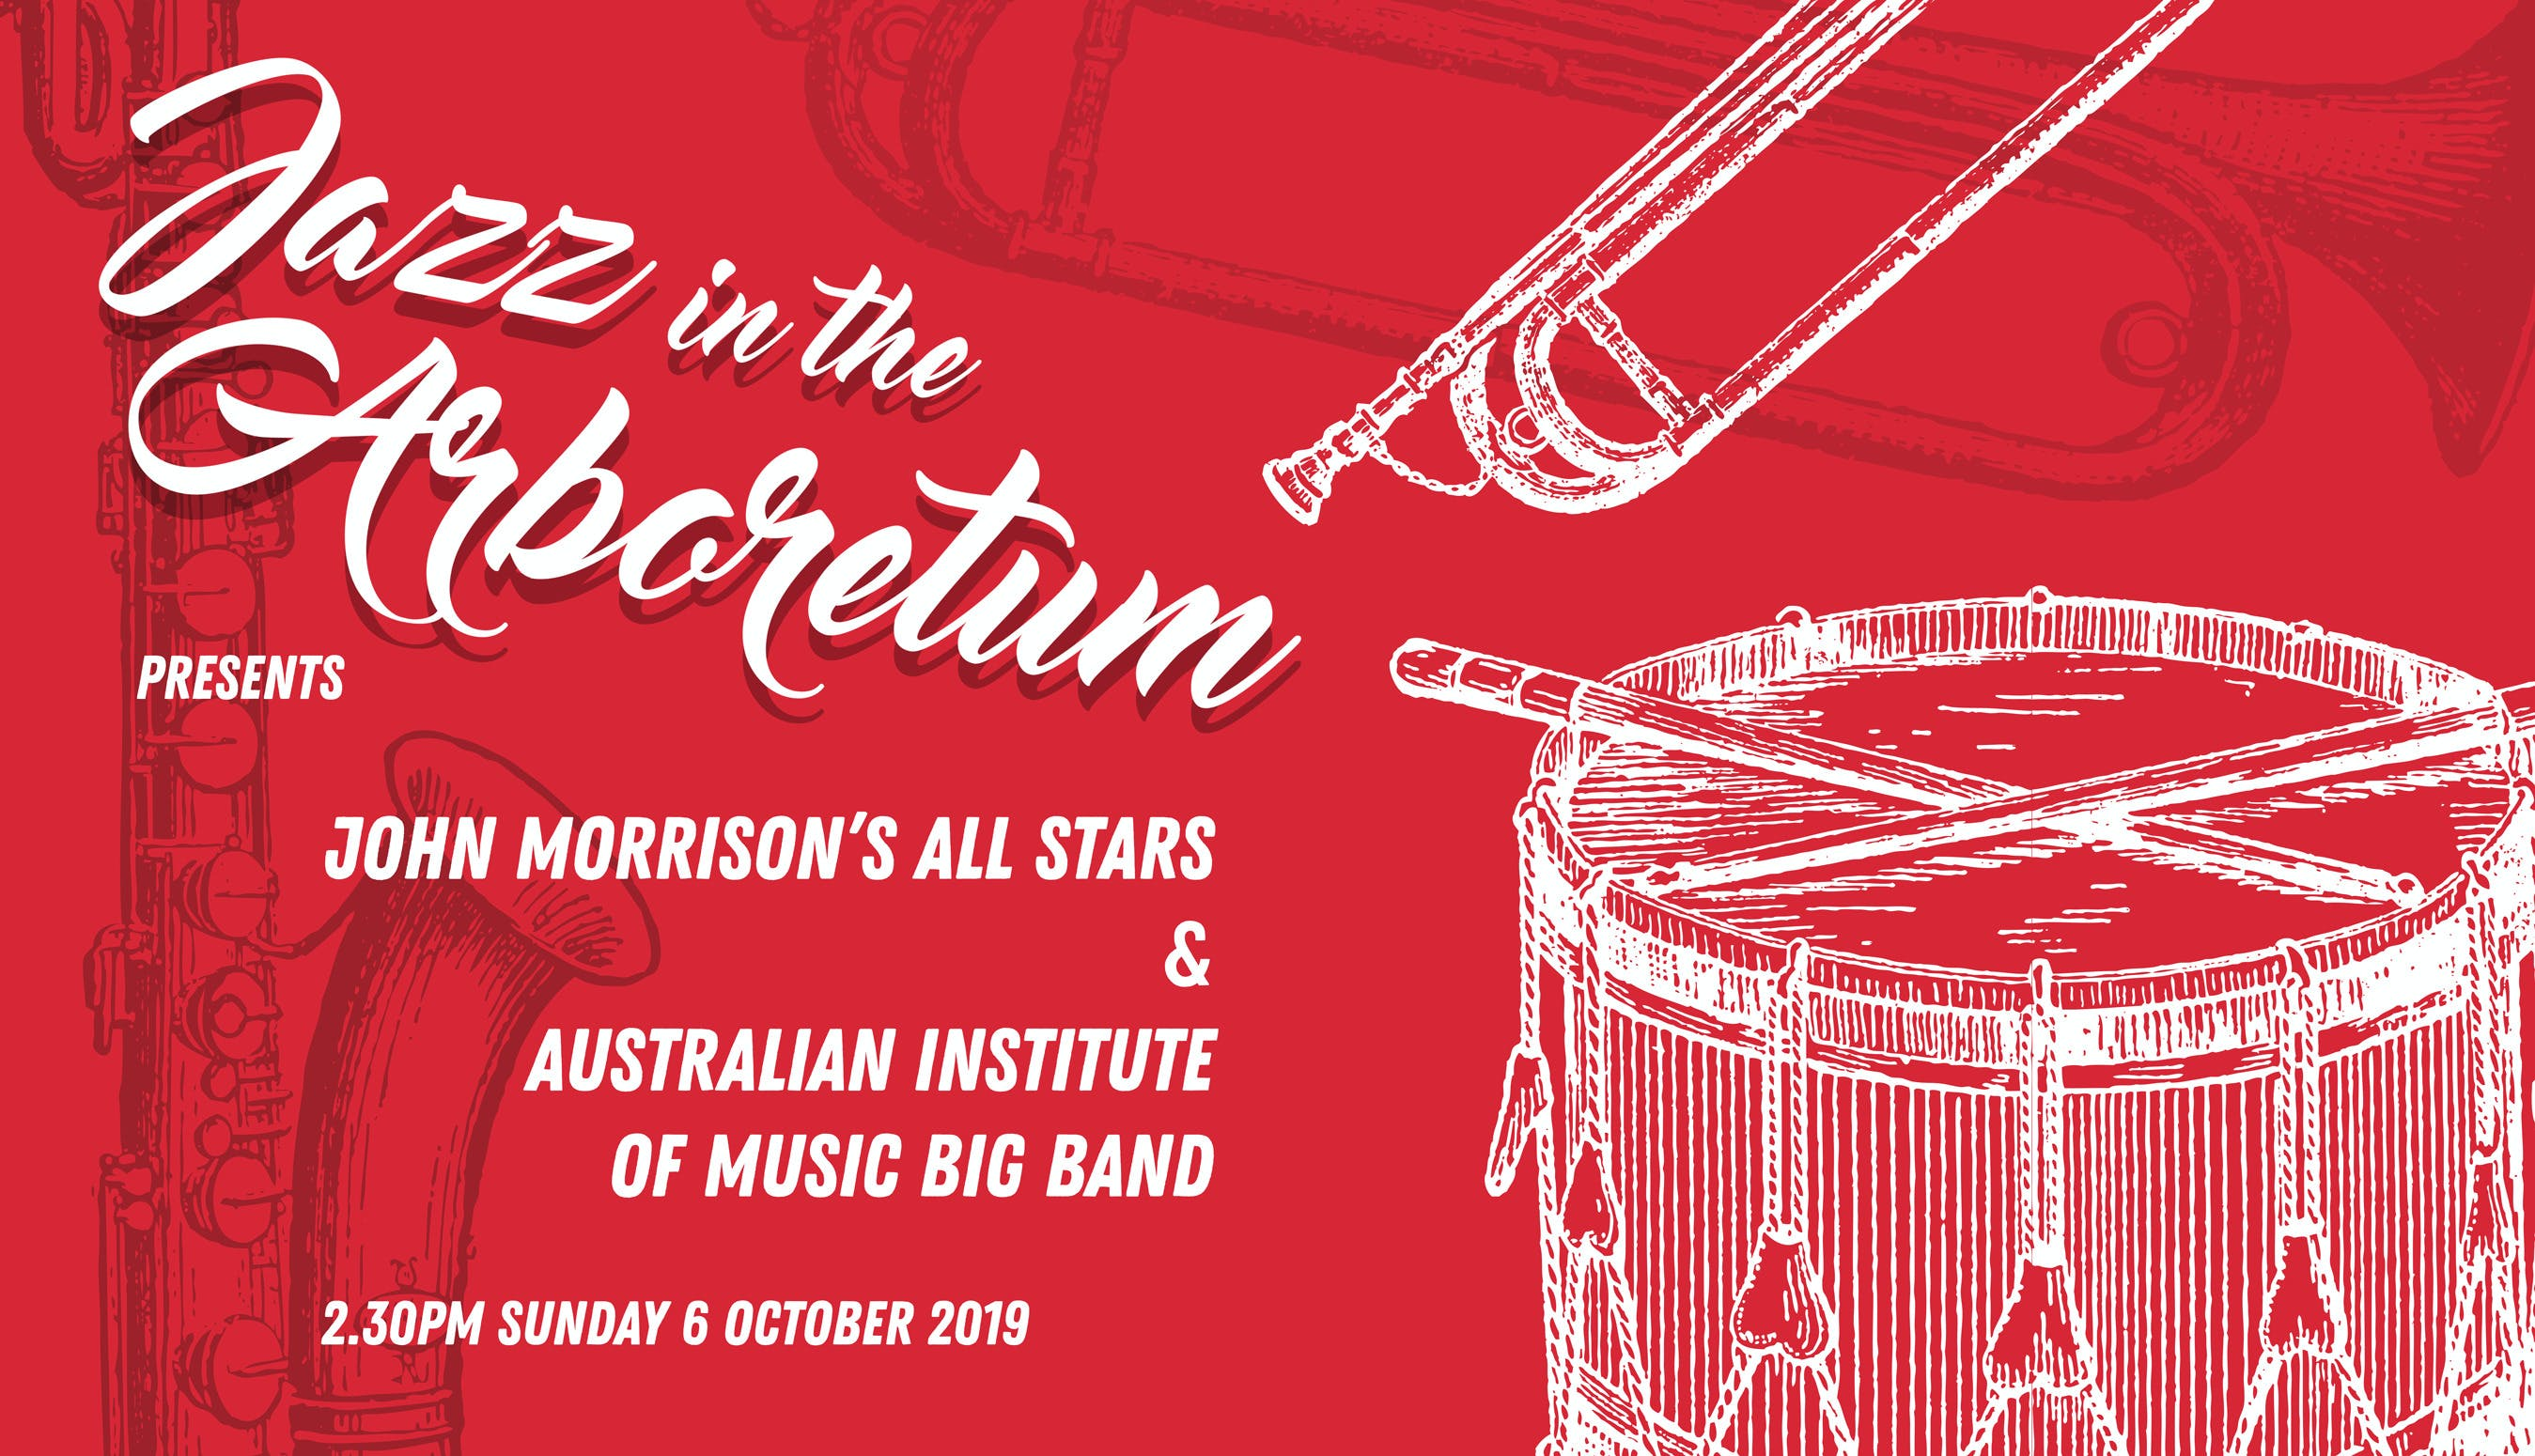 Jazz in the Arboretum - Accommodation in Surfers Paradise